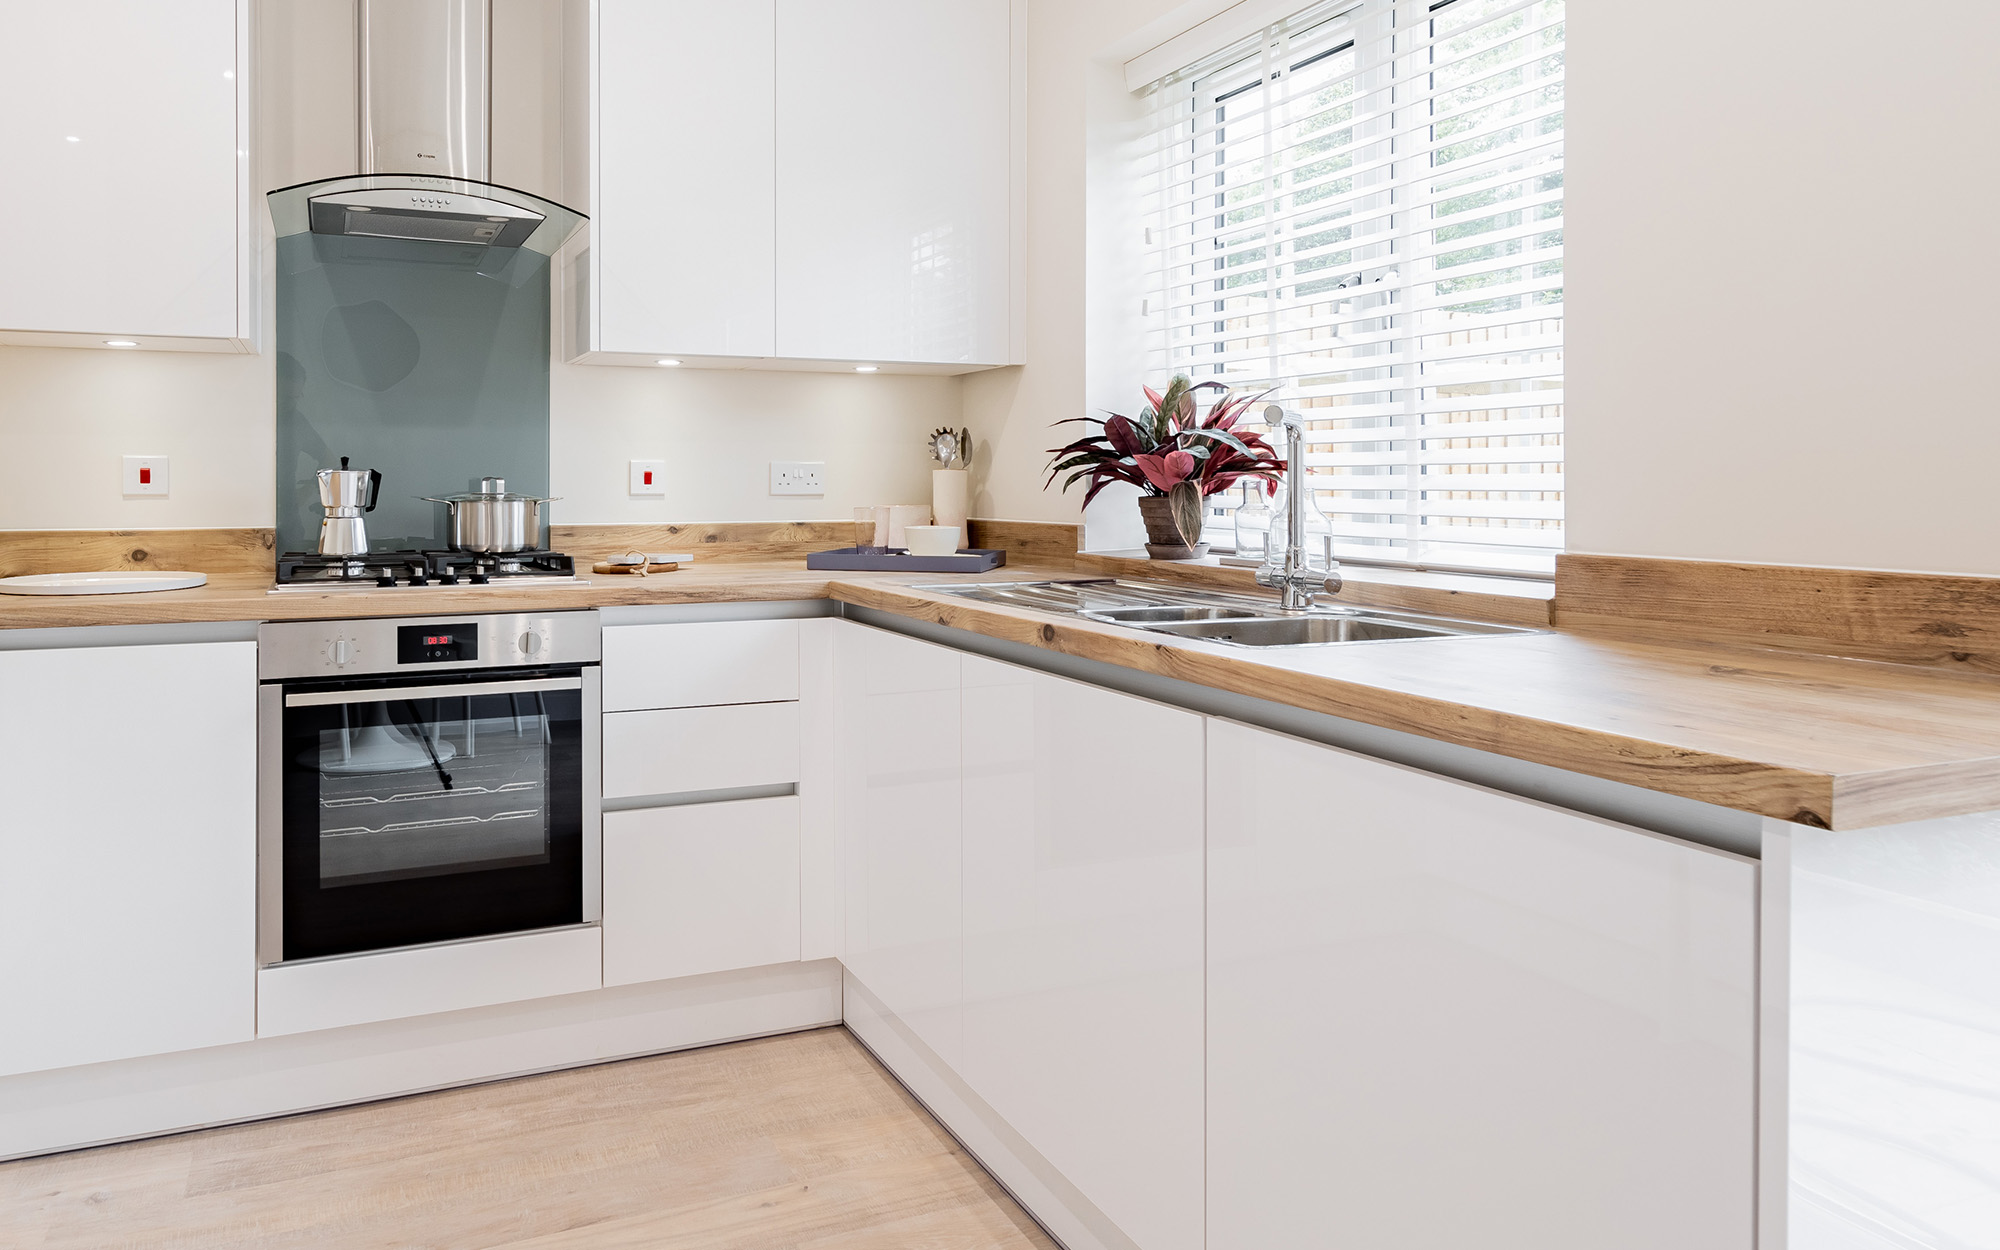 Homes for sale Chichester new build home Skylark Boxgrove Goodwood 4 bedroom